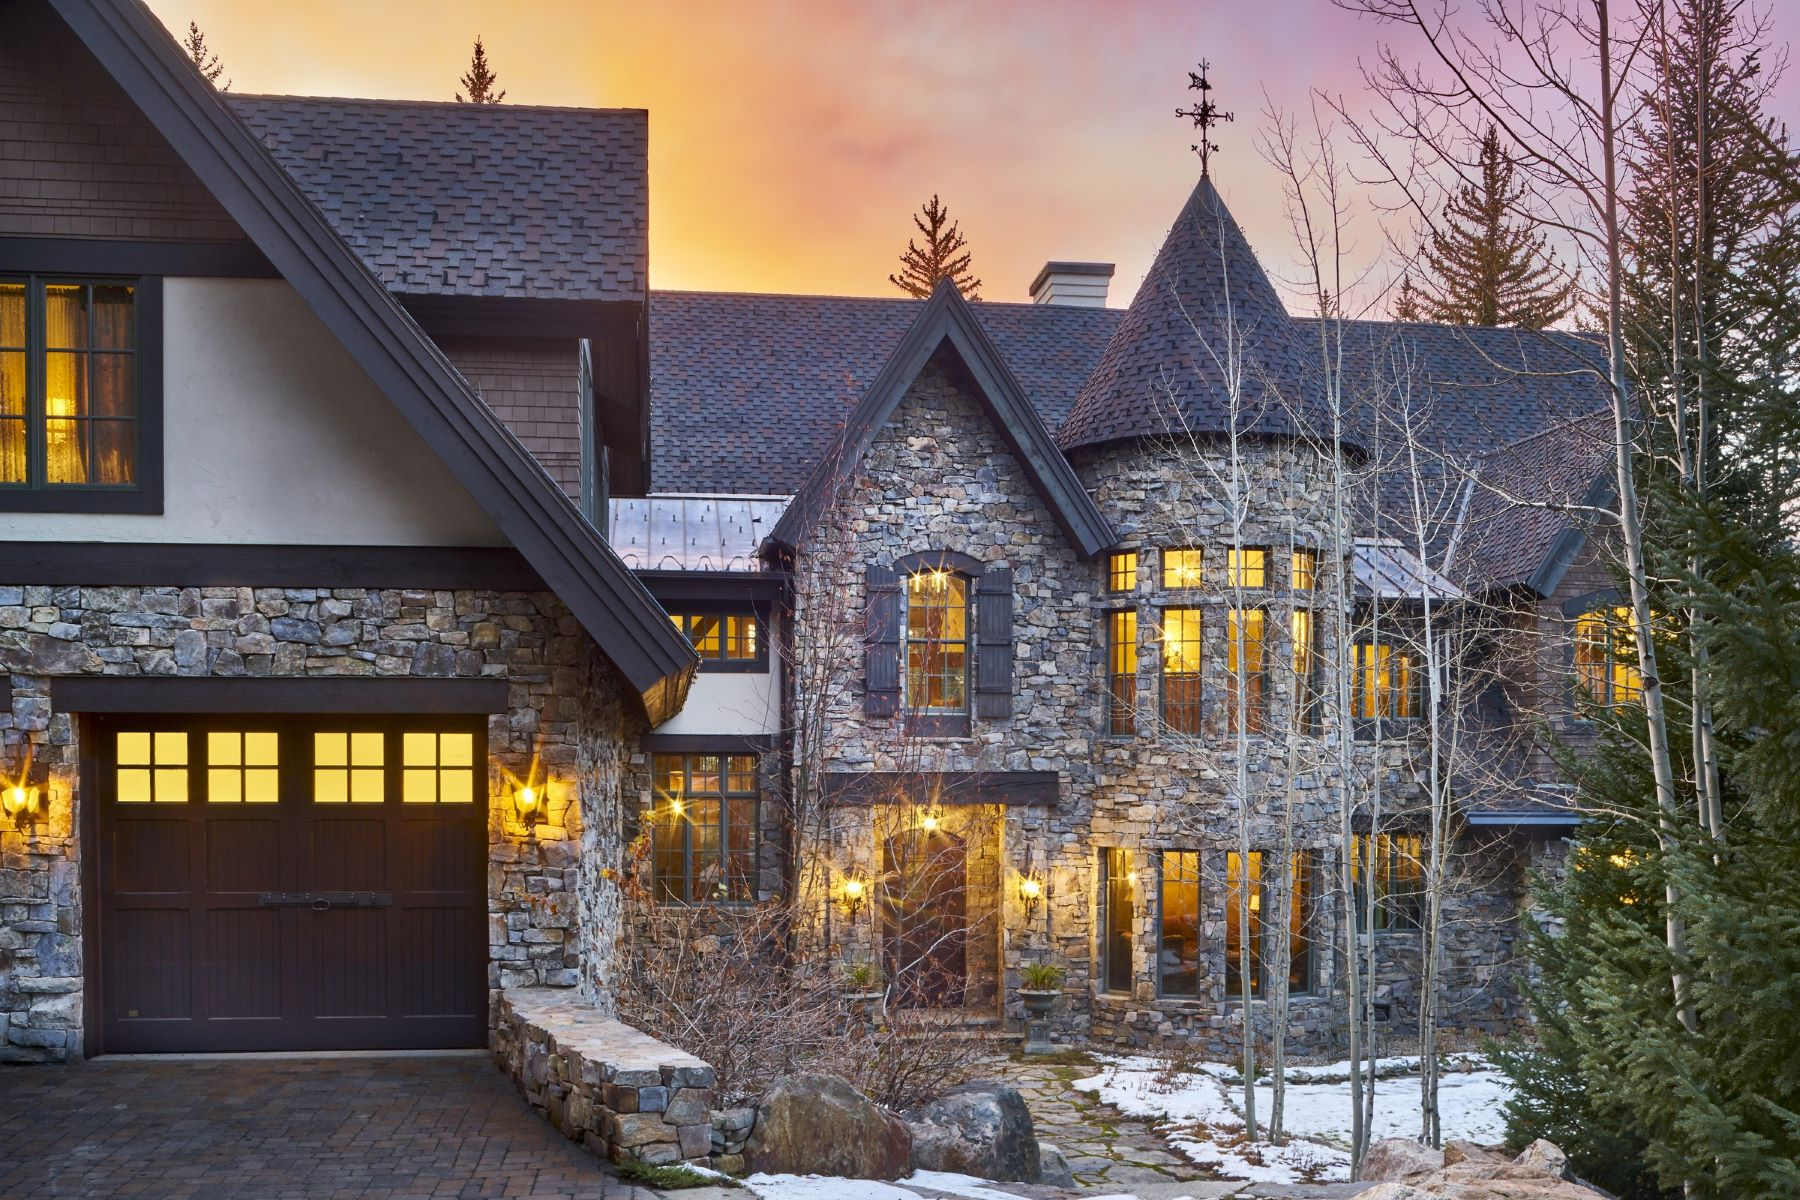 Single Family Home for Sale at Waterfront Castle in the Woods 1058 Graystone Court Steamboat Springs, Colorado 80487 United States